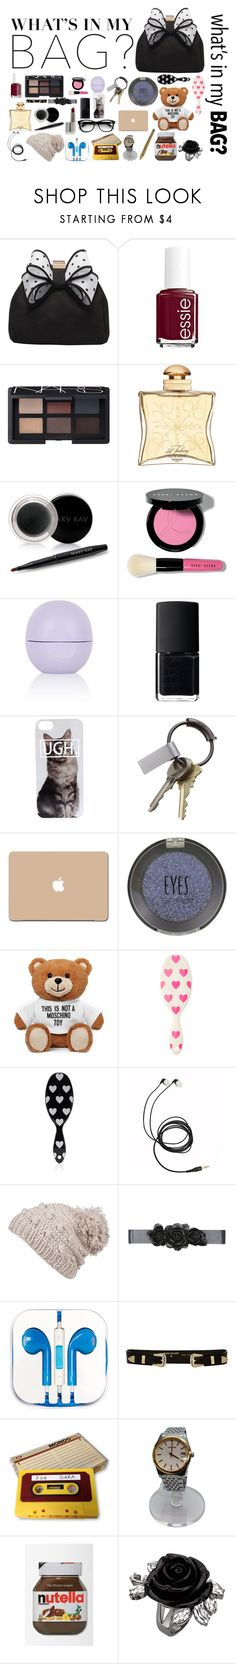 """""""wath¨s in my bag"""" by teresapulido ❤ liked on Polyvore featuring Miss KG, Essie, NARS Cosmetics, Hermès, Mary Kay, Bobbi Brown Cosmetics, Topshop, CB2, Moschino and Forever 21"""